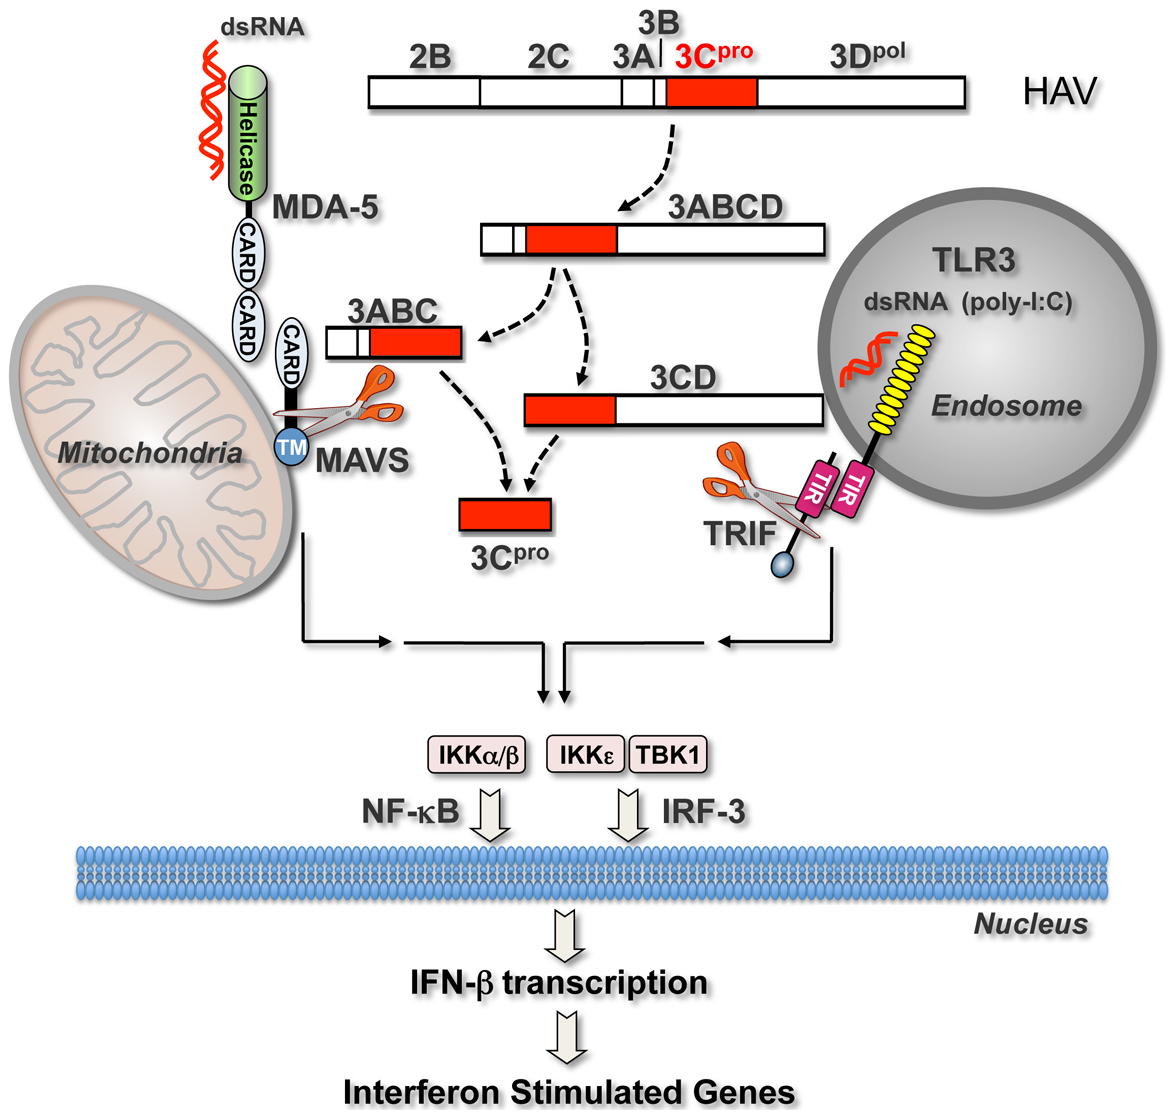 Interferon-activating pathways disrupted during HAV infection by 3C<sup>pro</sup> precursor-mediated proteolysis of signaling adaptor proteins.